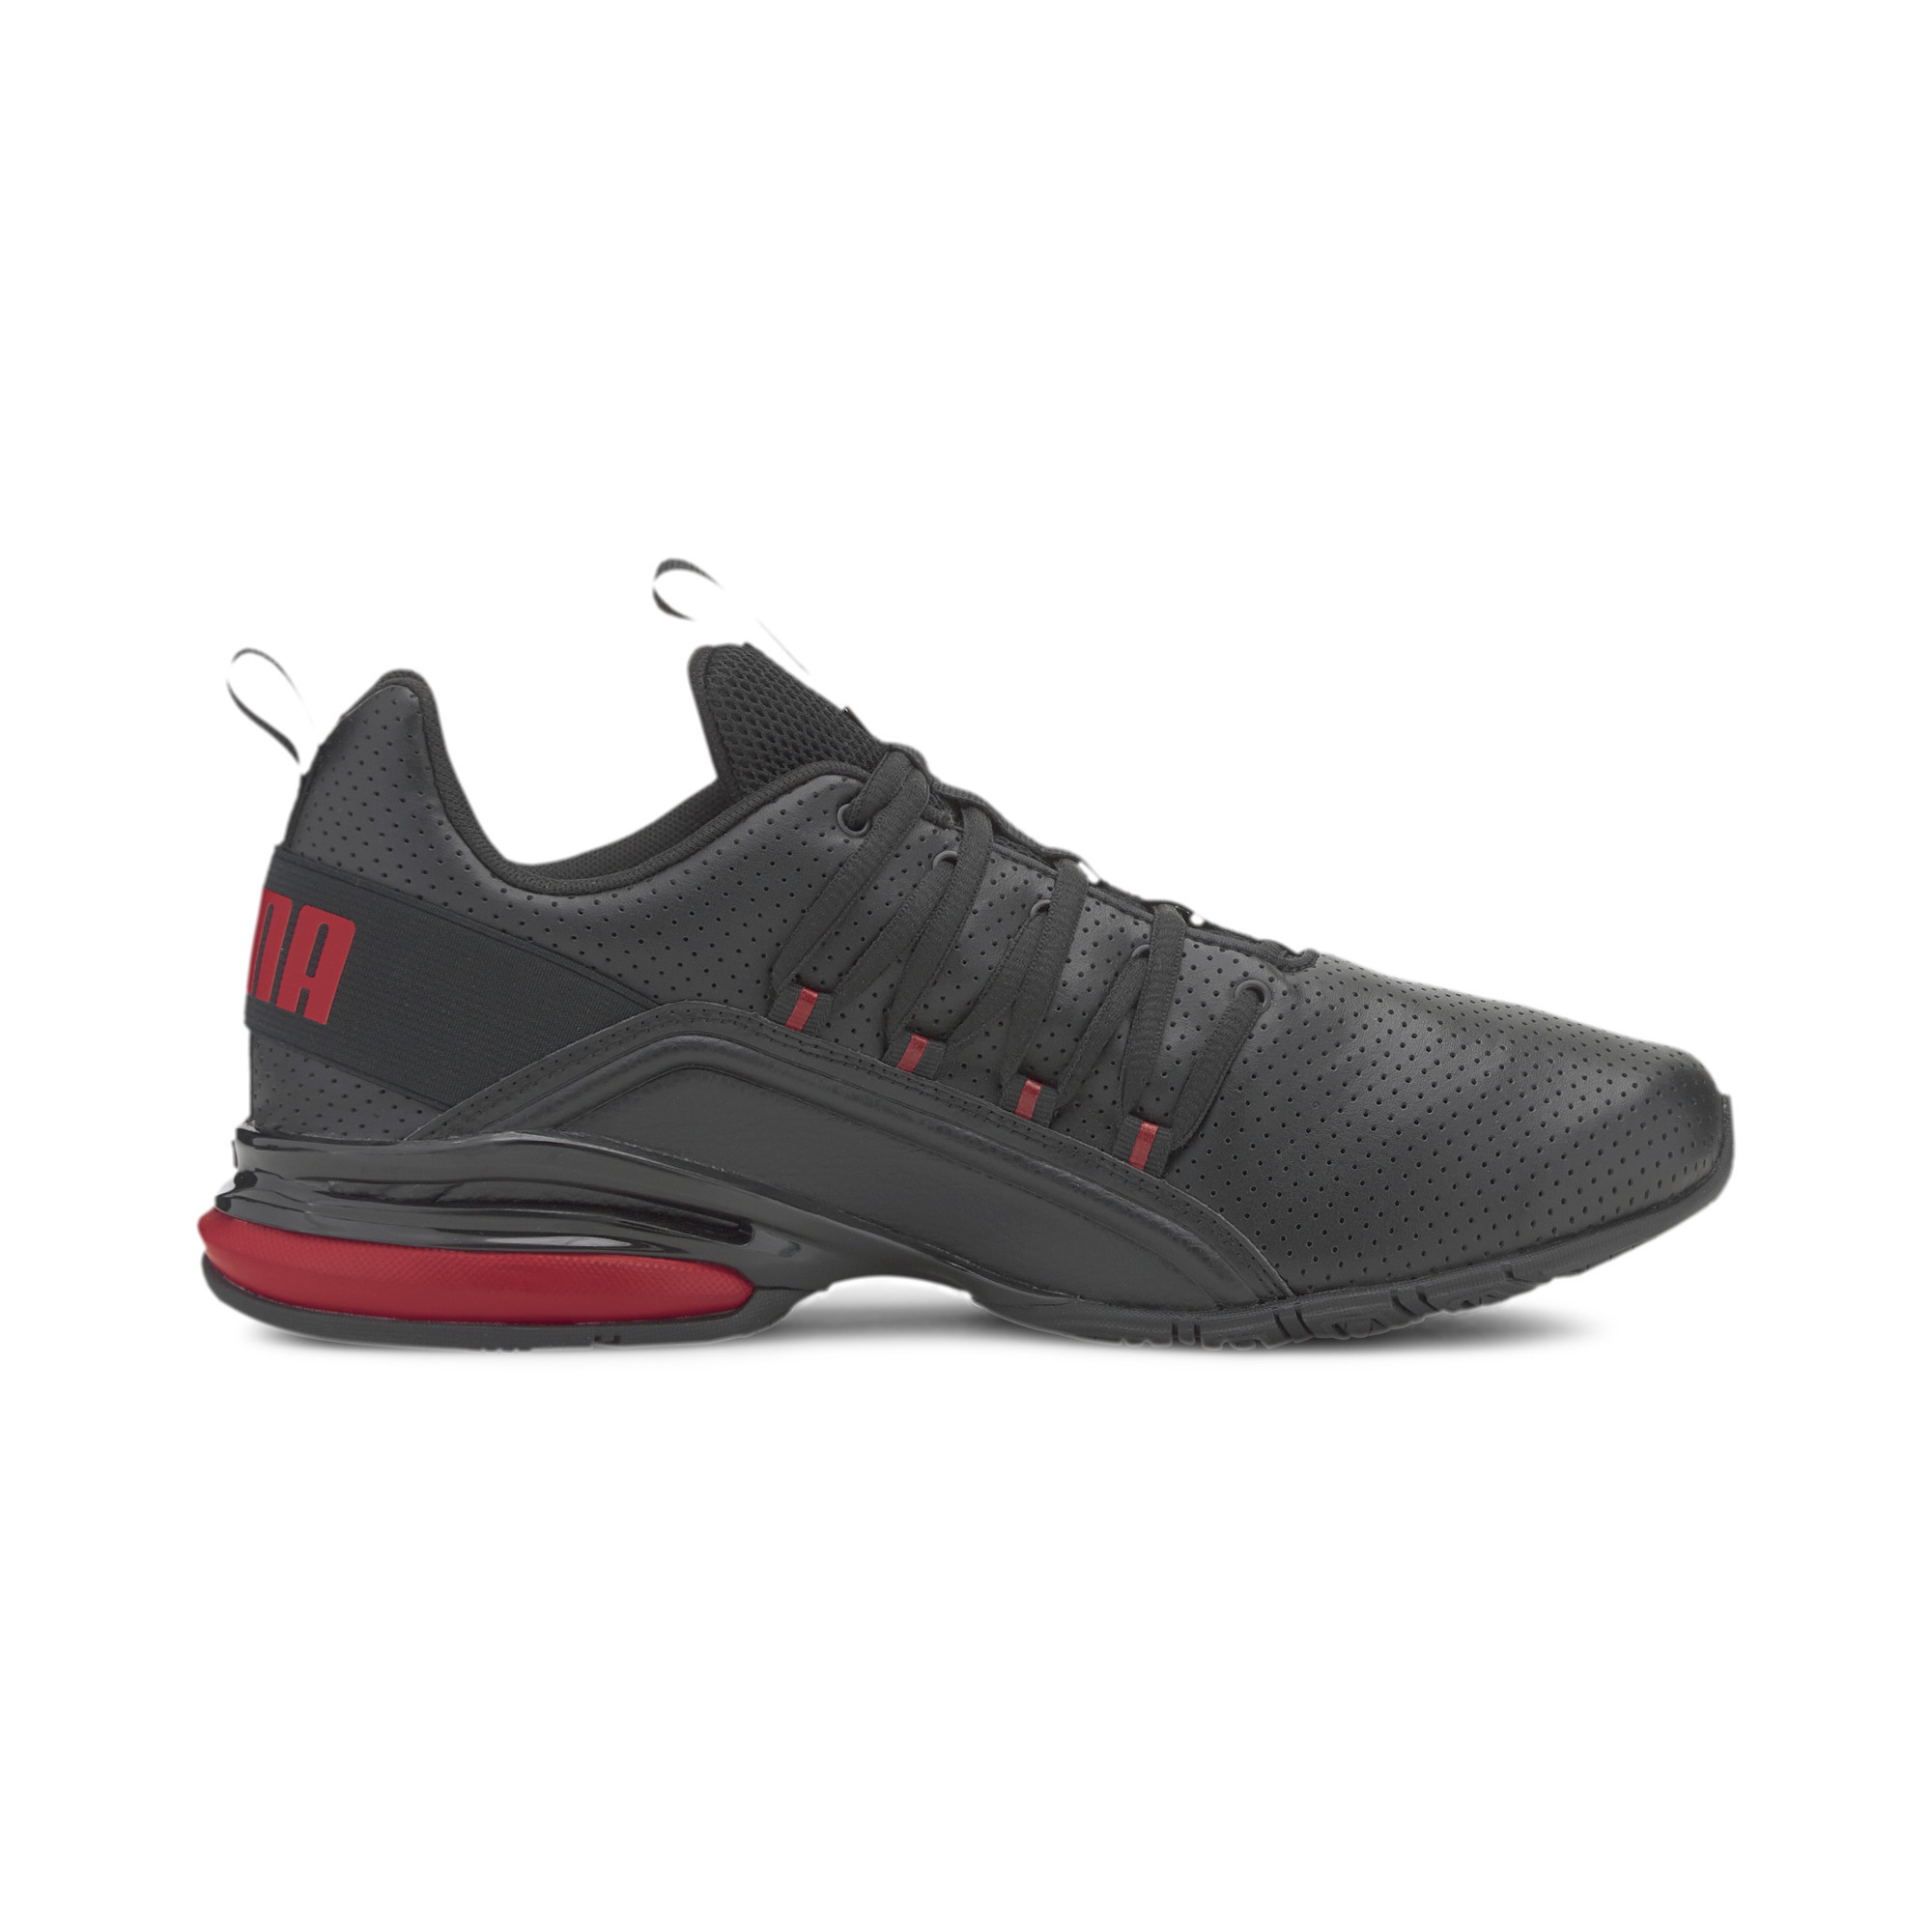 PUMA-Men-039-s-Axelion-Perf-Training-Shoes thumbnail 12